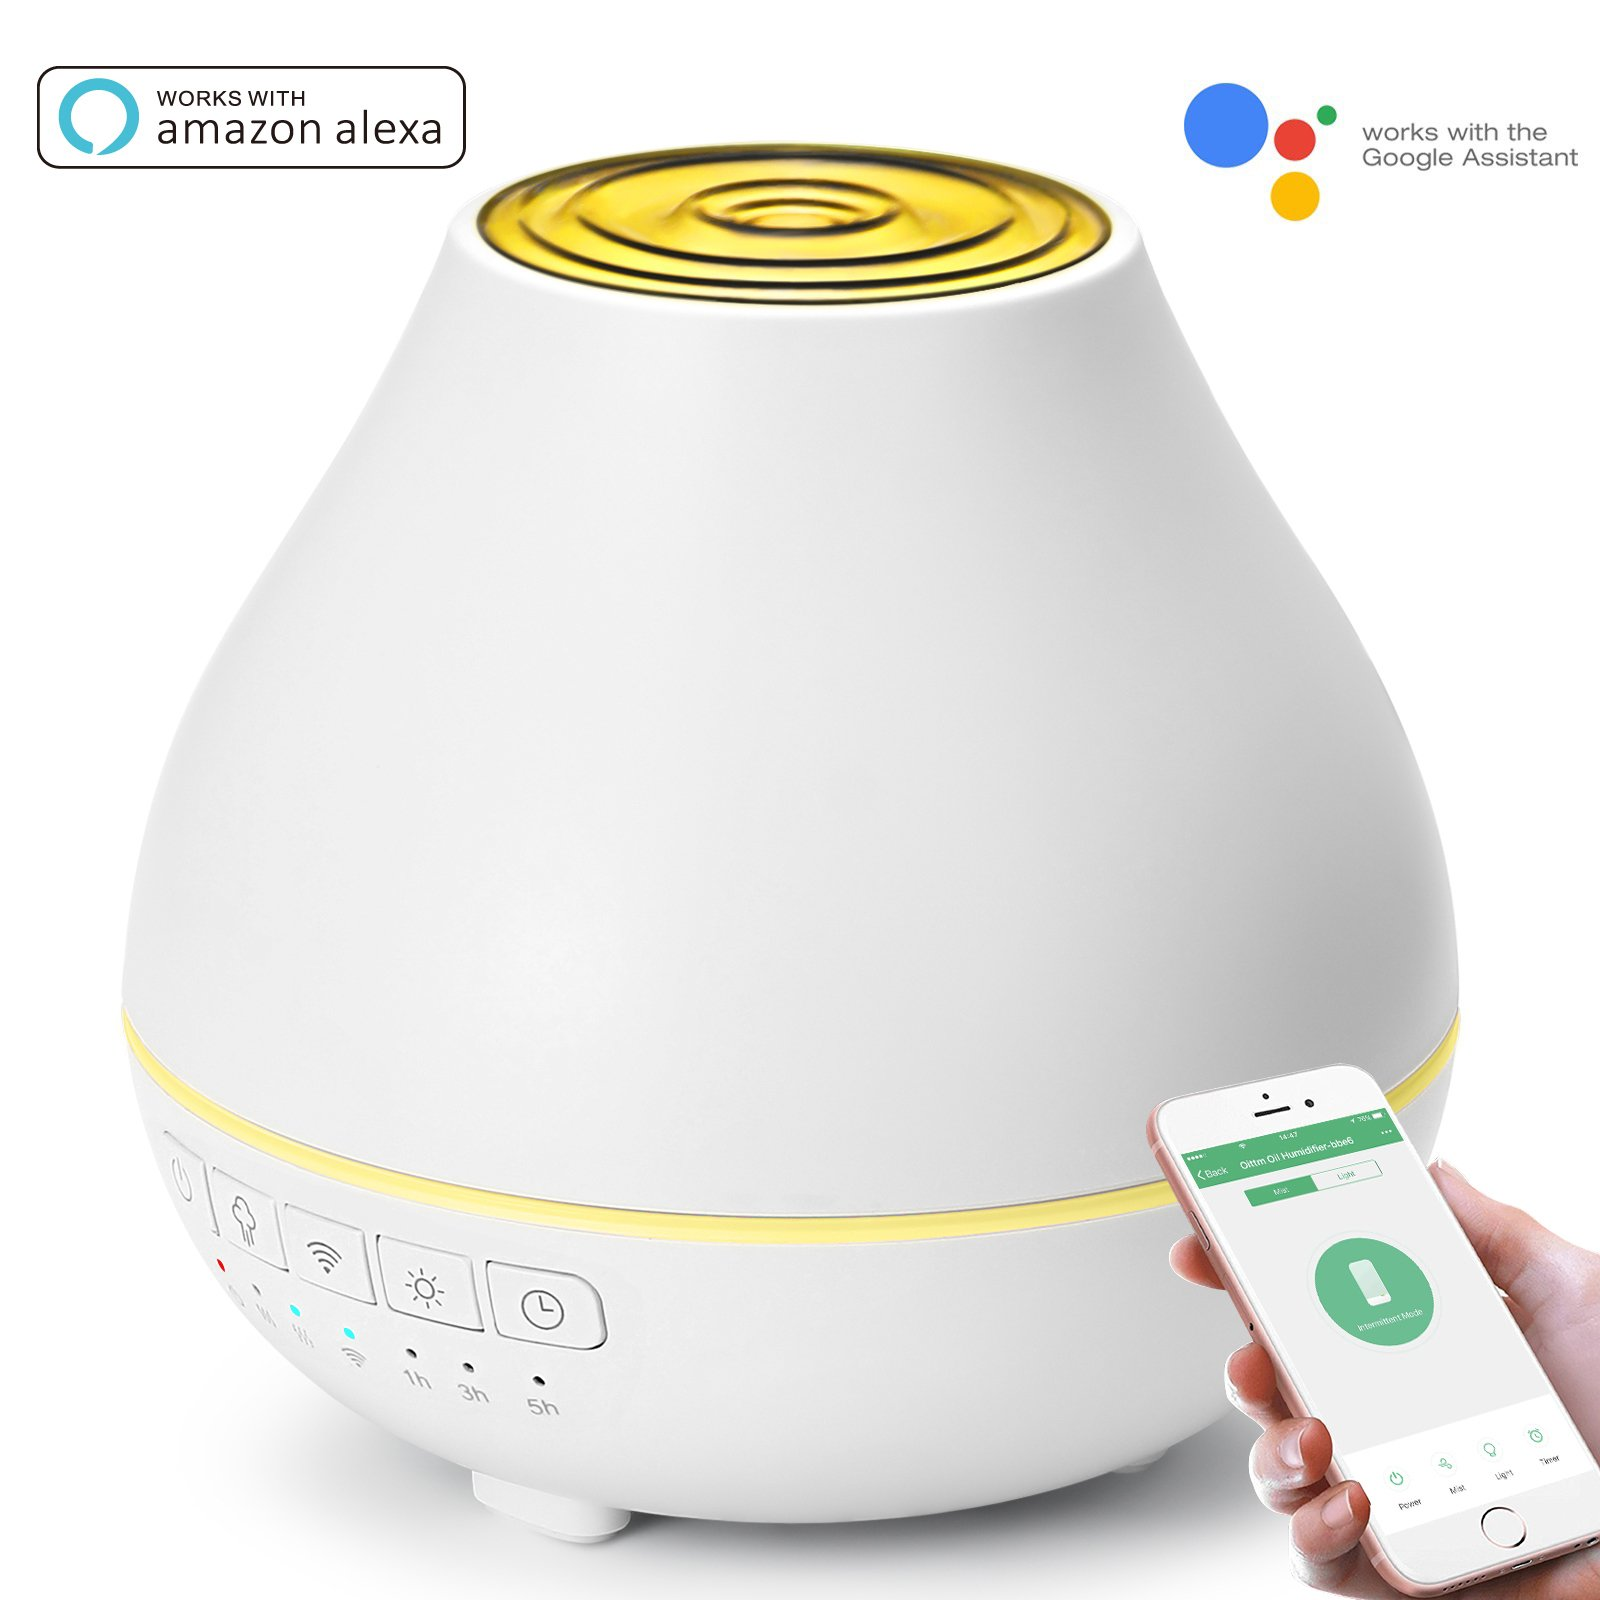 Oittm Smart Aroma Essential Oil Diffuser Wifi Humidifier, Works with Alexa, Google Assistant and Phones App, 200ml Ultrasonic Adjustable Mist Waterless Auto Shut-off 7 Color LED Lights & Timing